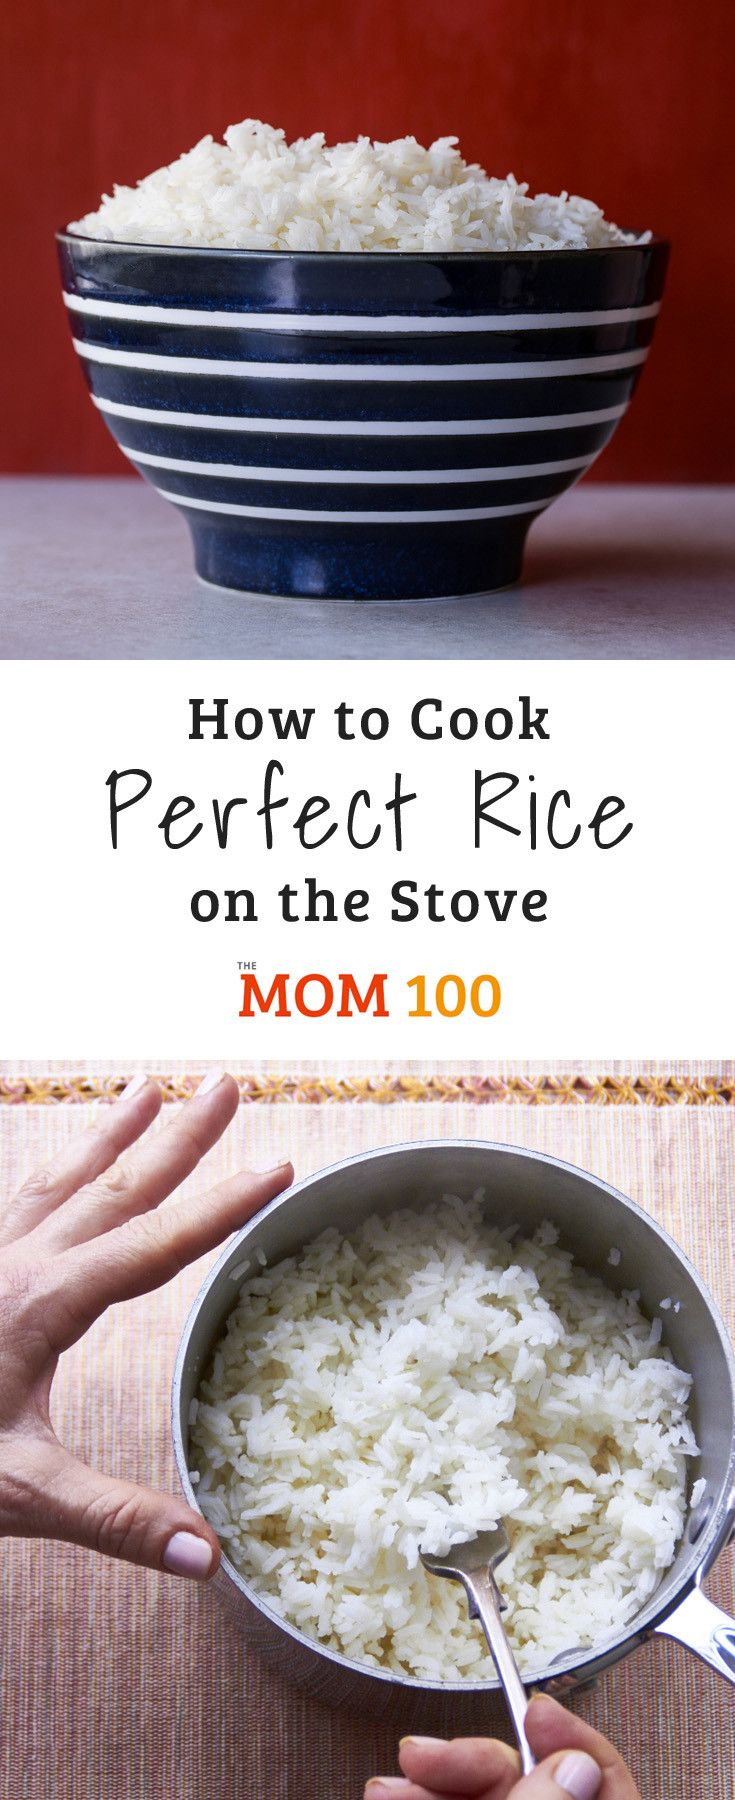 How to Cook Perfect Rice on the Stove #whitericerecipes